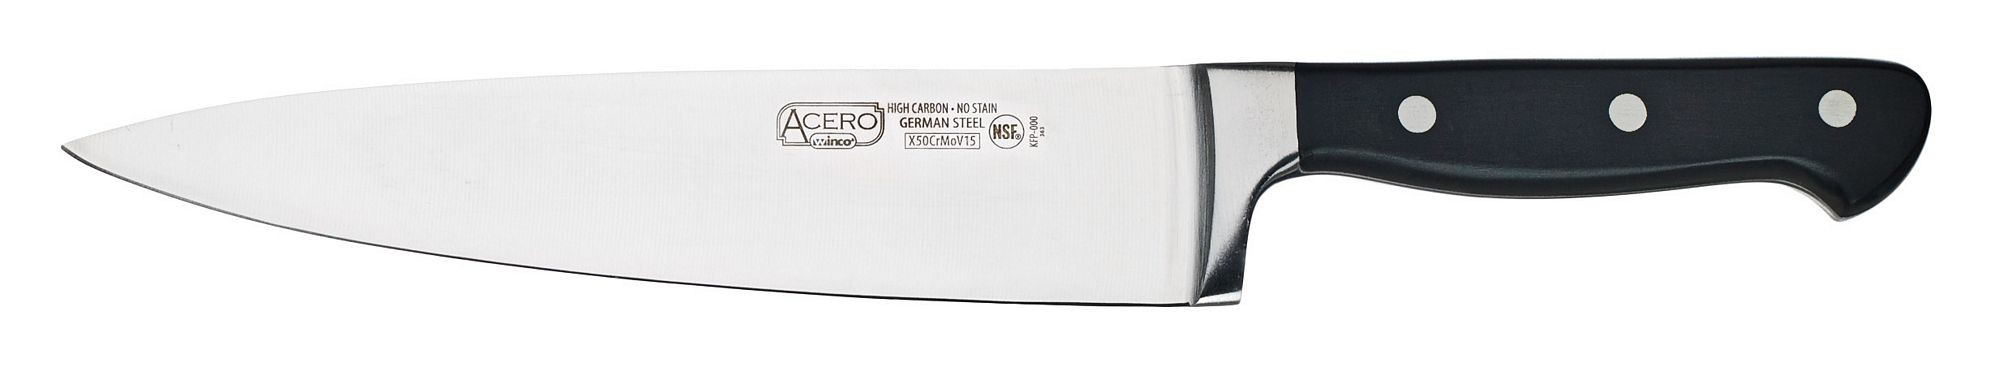 Winco Kfp-80 Chef Knife 8""